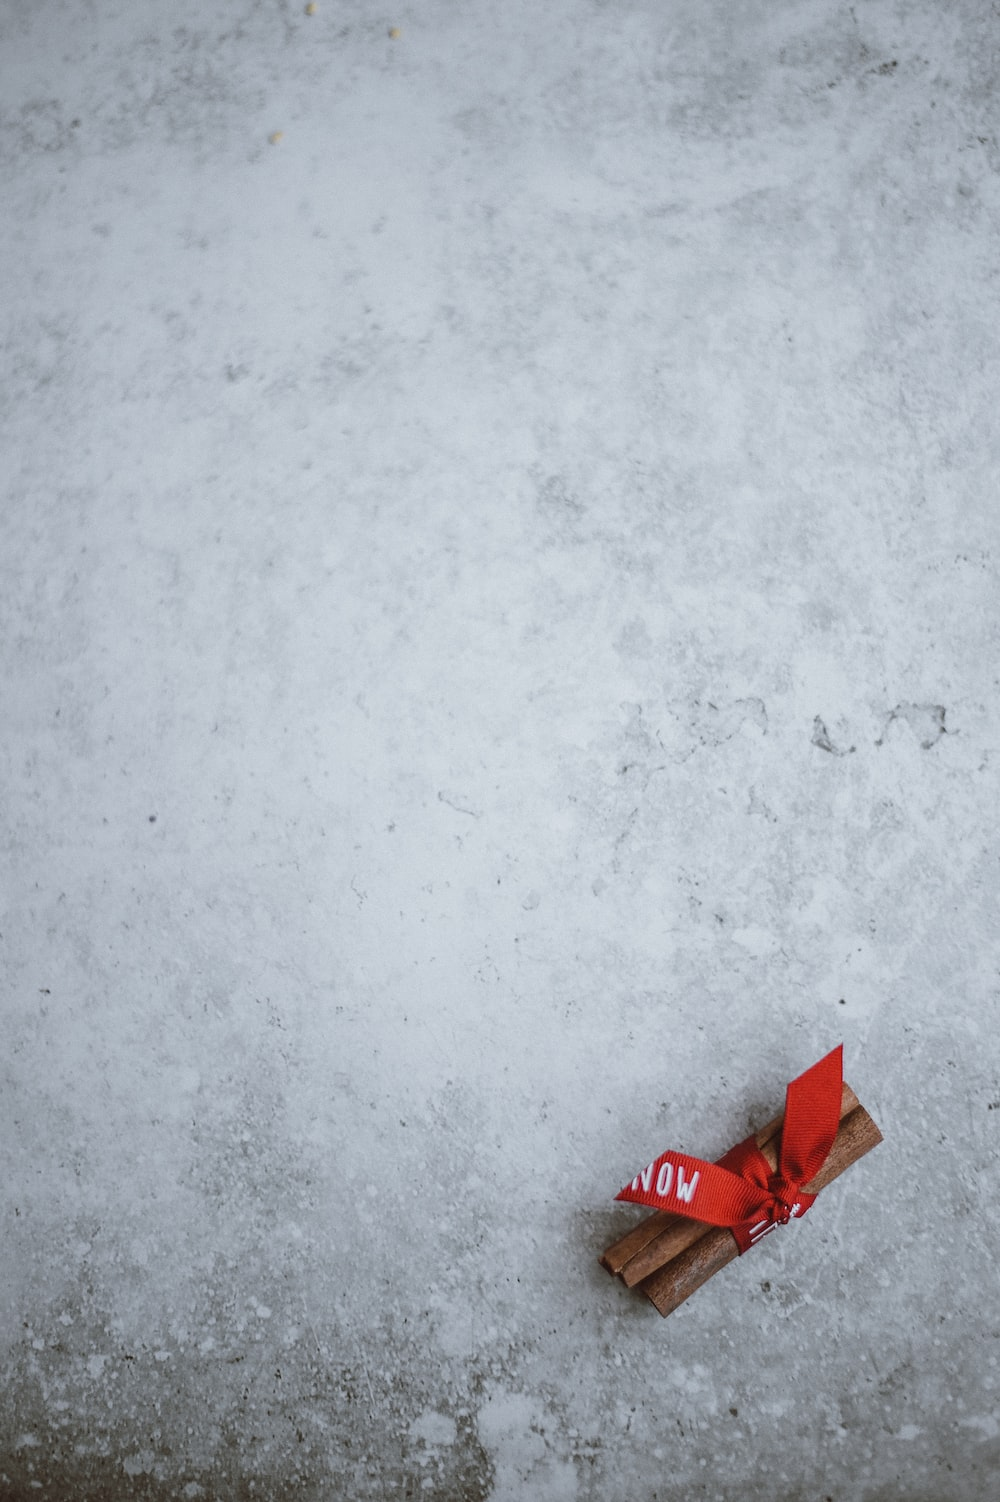 red ribon on snow